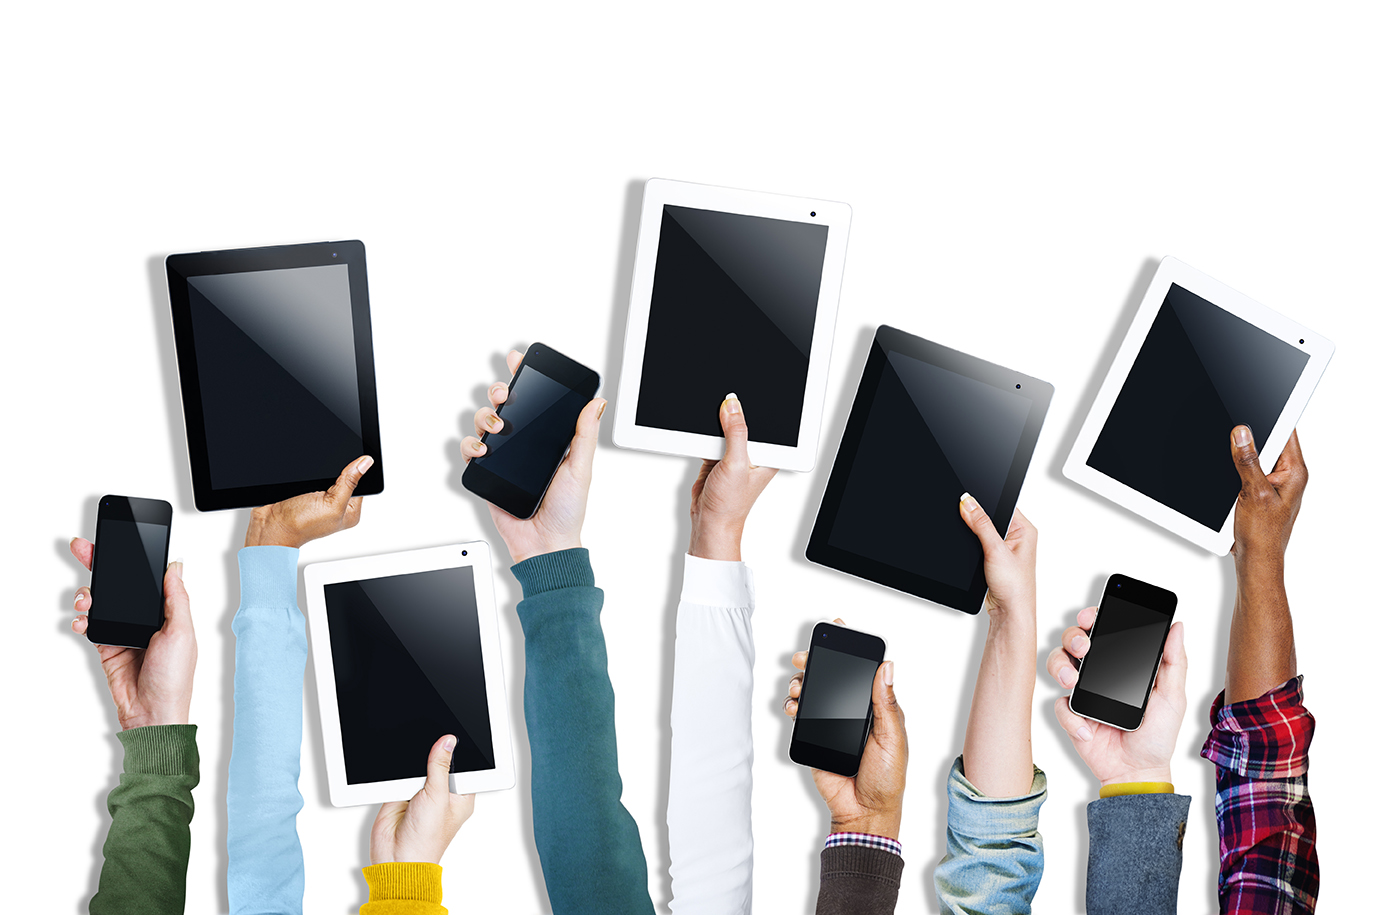 Arms waving mobile devices